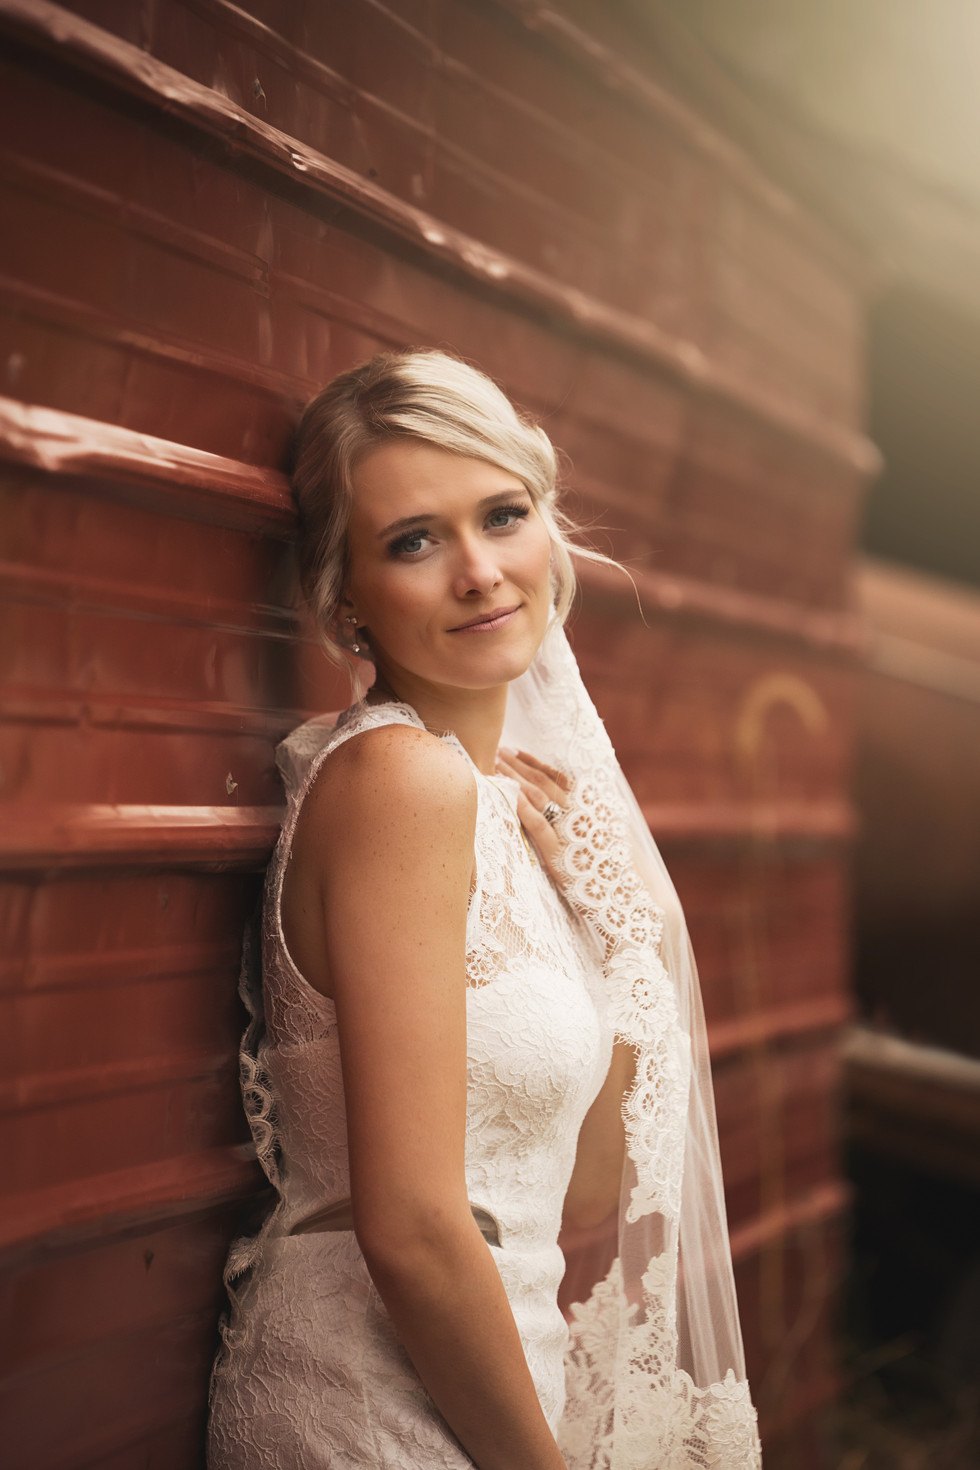 Bride against a red barn